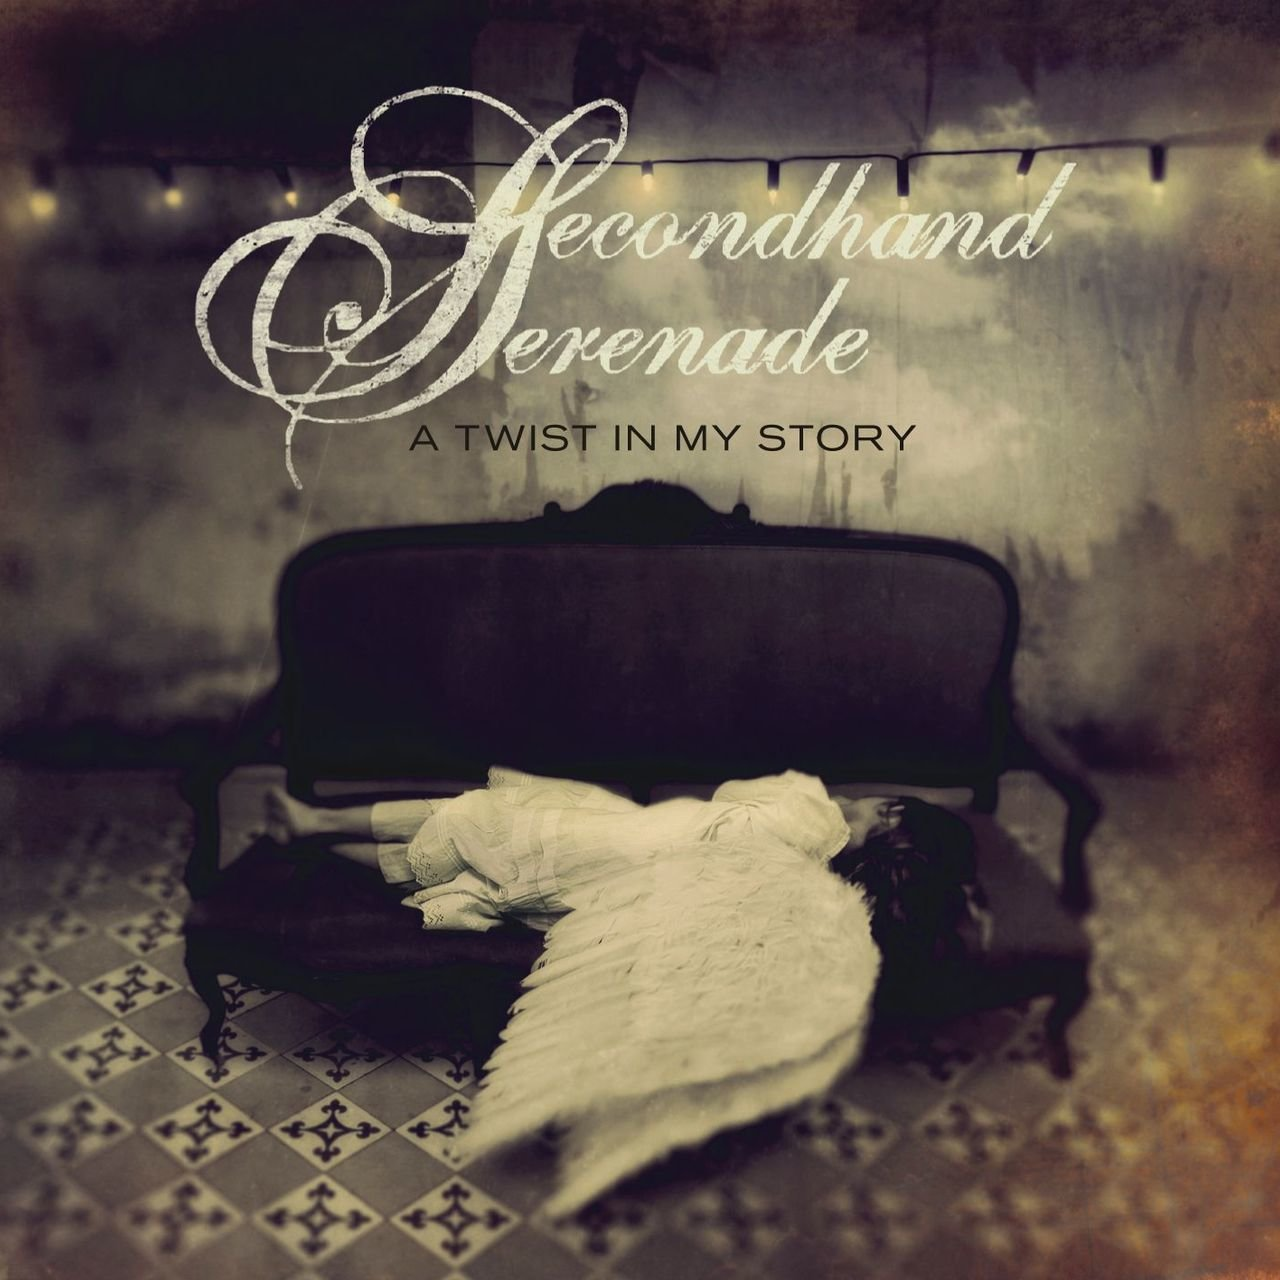 Secondhand Serenade A Twist In My Story Guitar Chords Lyrics